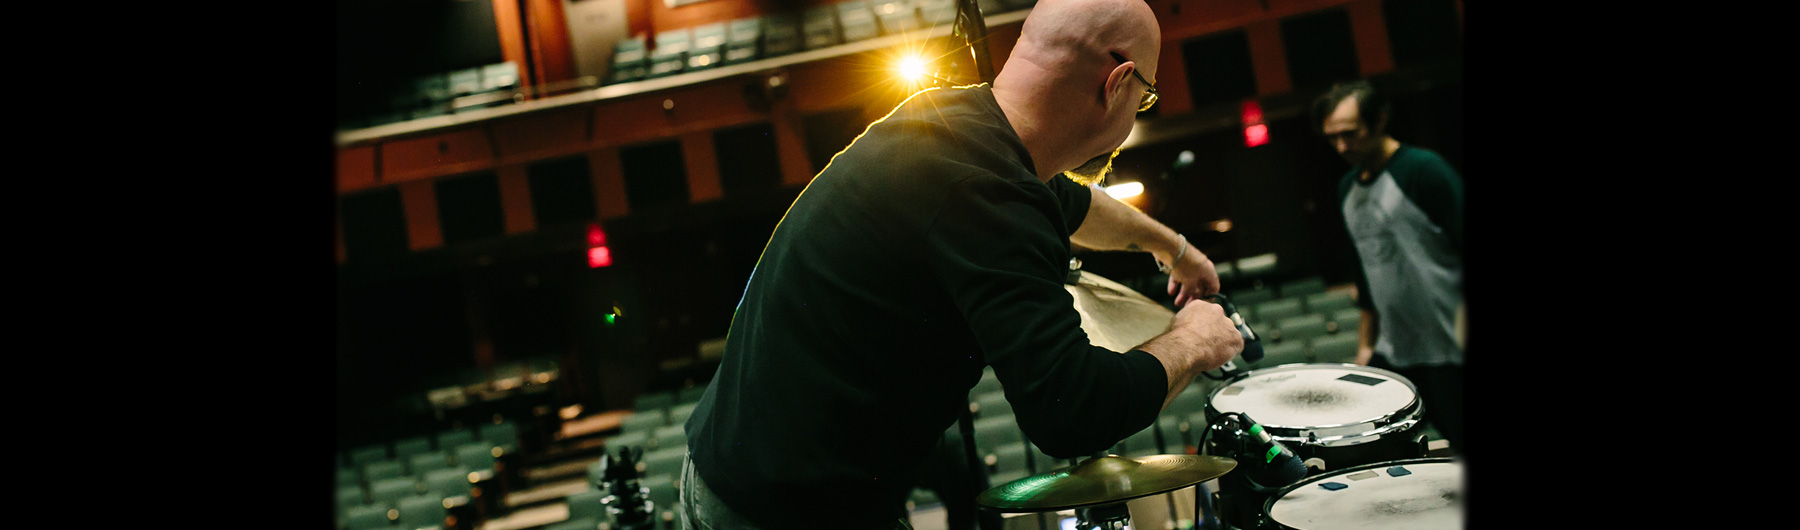 image of theatre crew setting up a drum set on stage, before a show